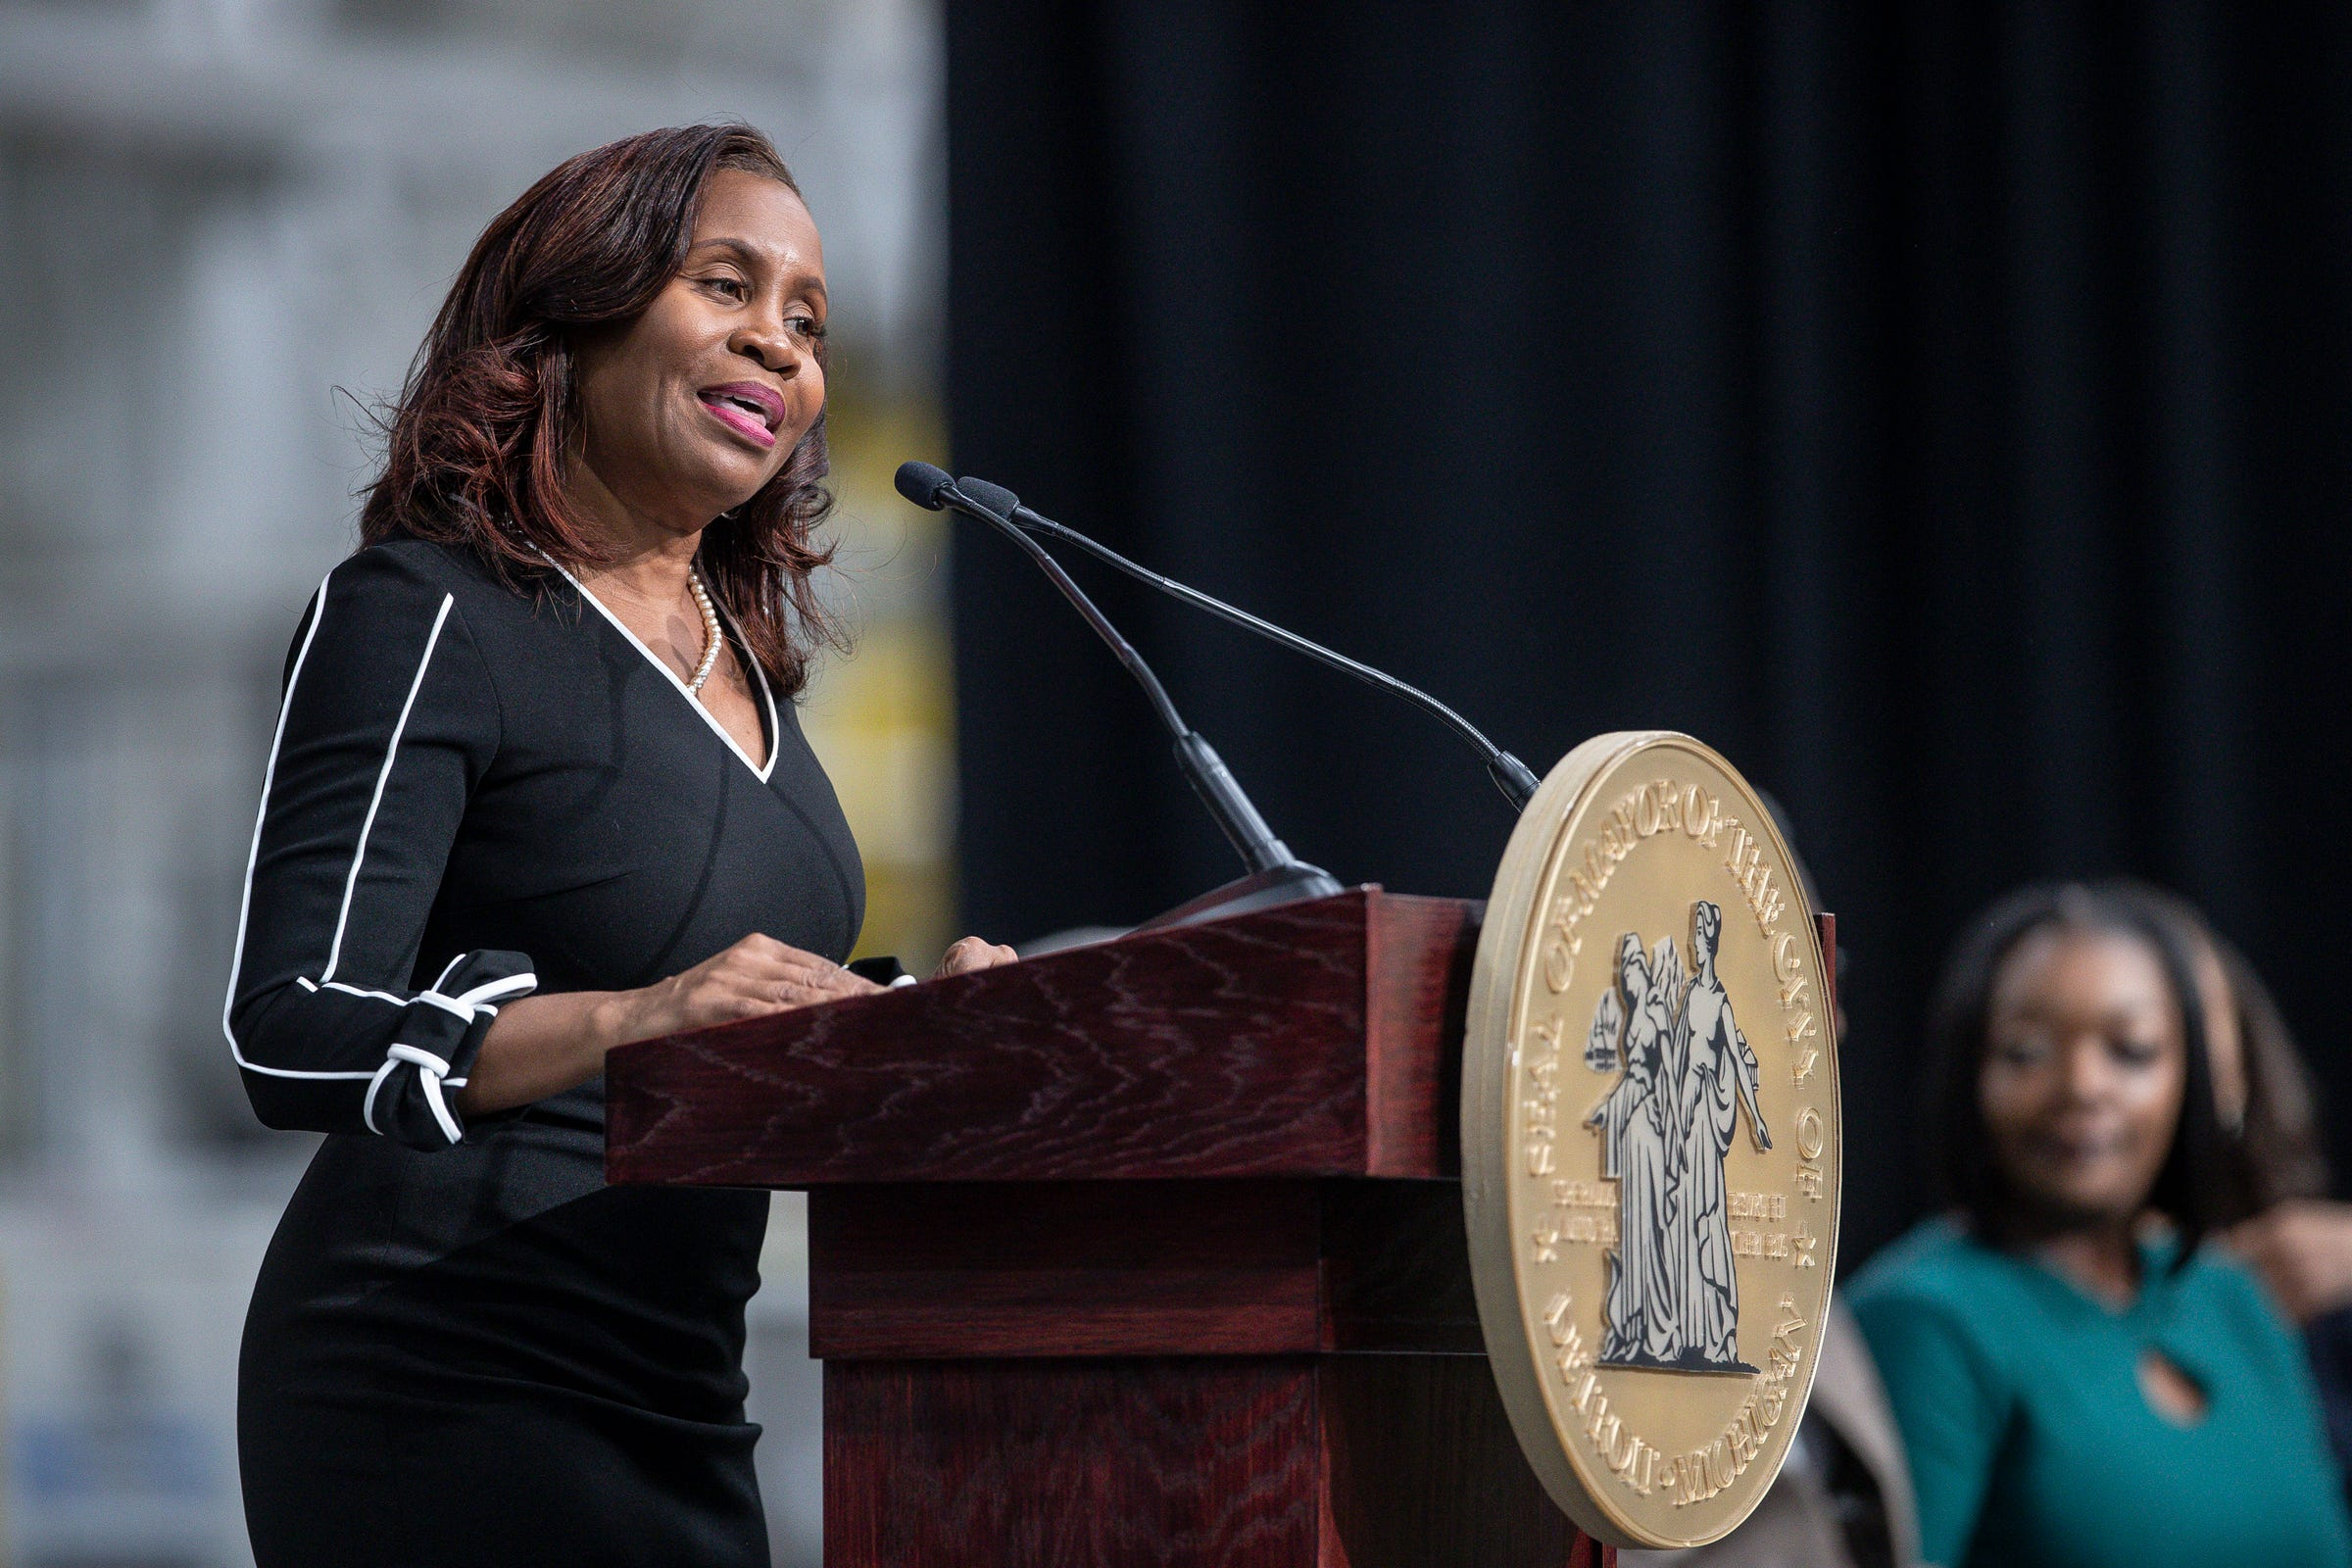 Detroit city clerk Janice Winfrey dominates primary election, will face Denzel McCampbell